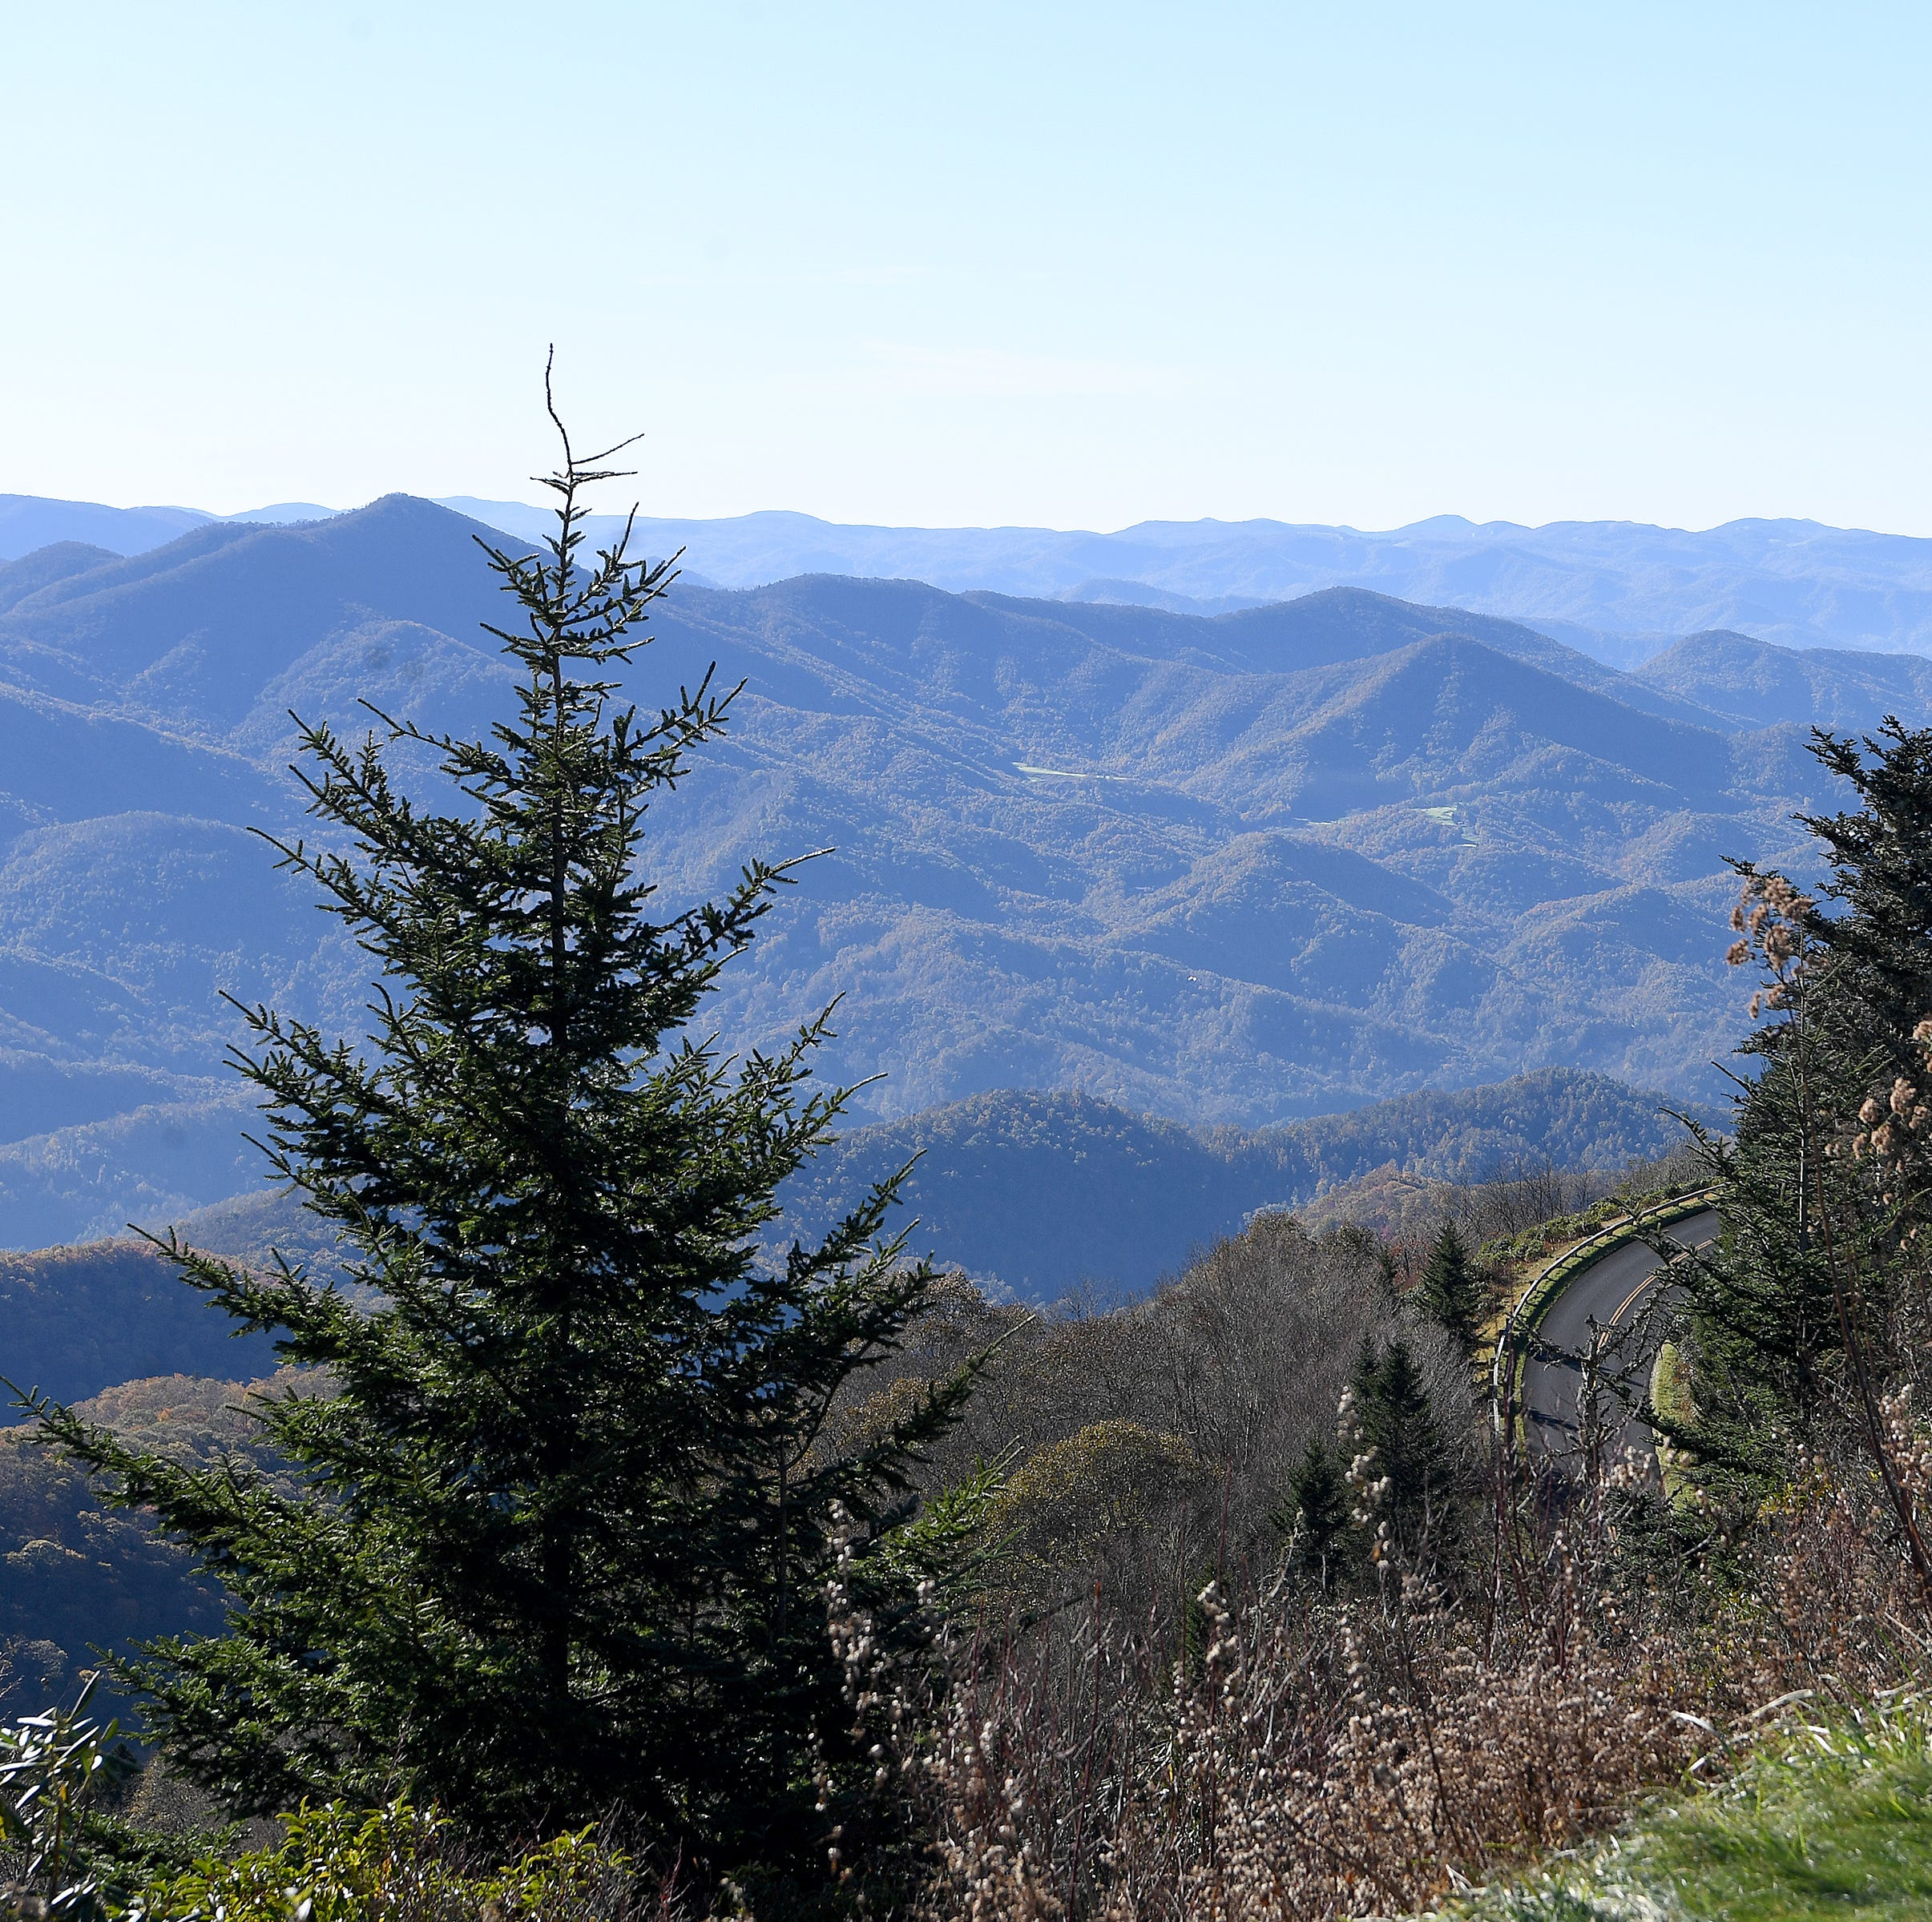 Going for a drive on the Blue Ridge Parkway? Know which sections are closed